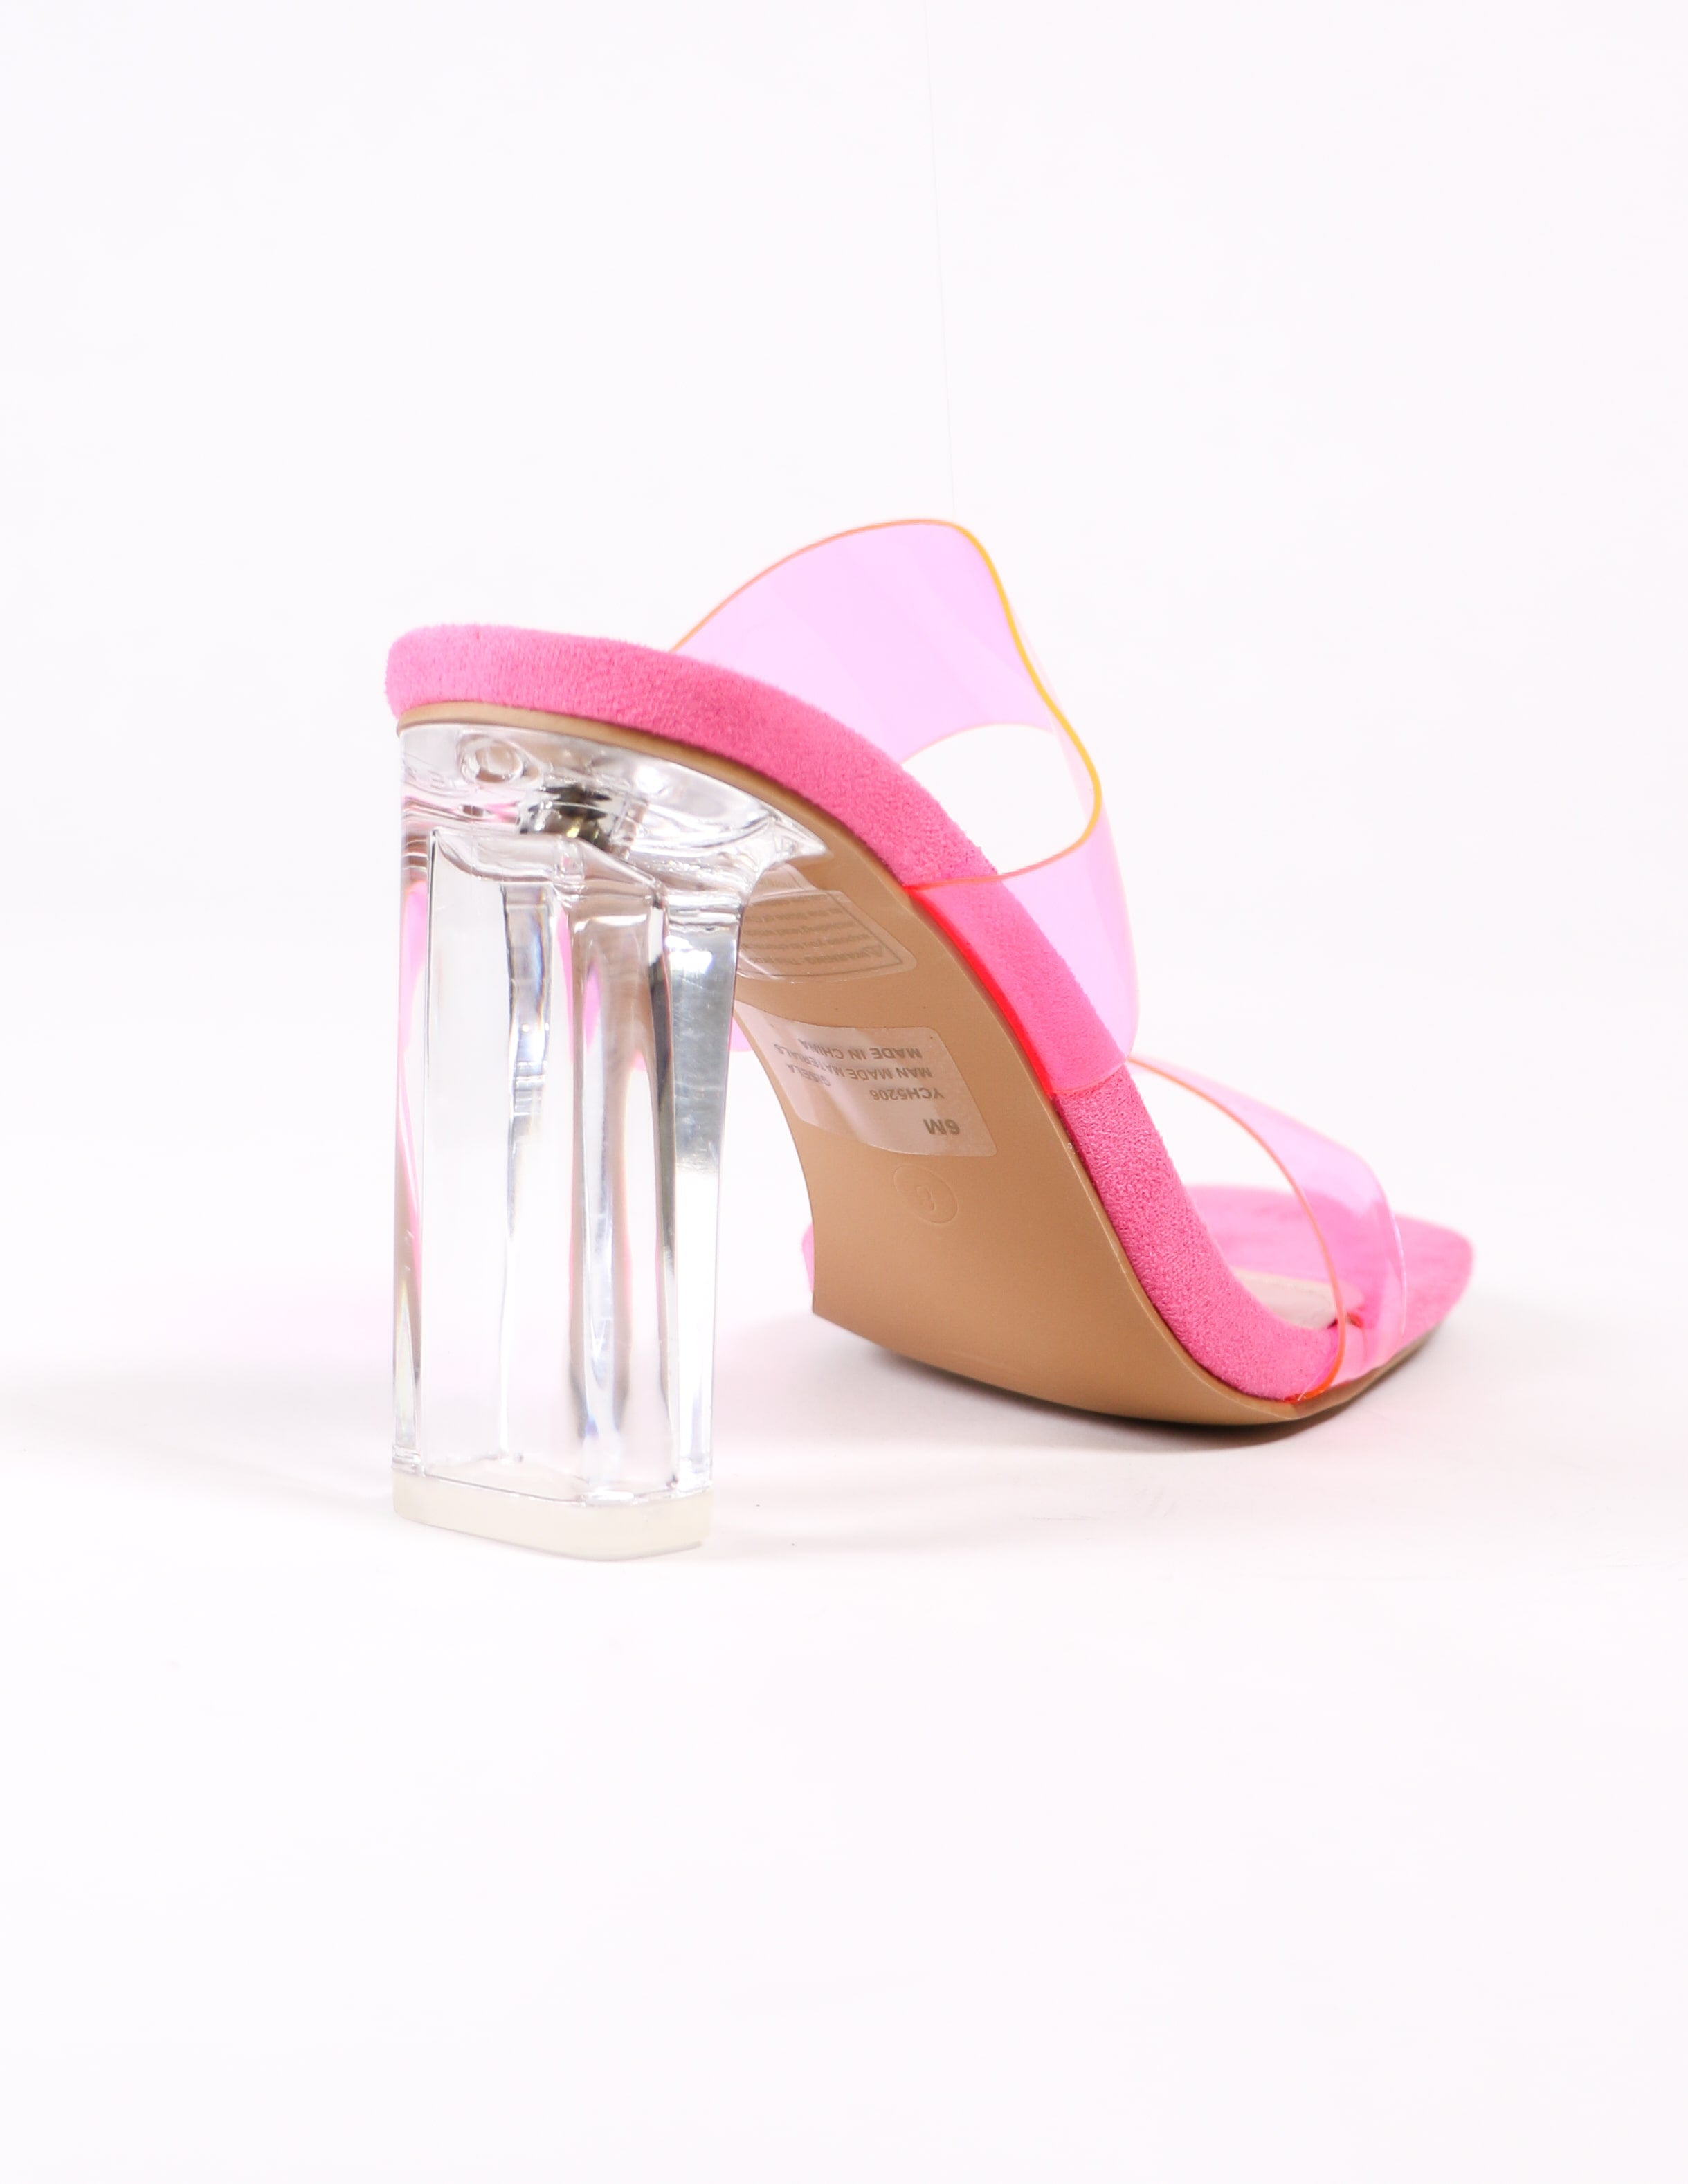 back crystal block heel on pink strappy heel - elle bleu shoes